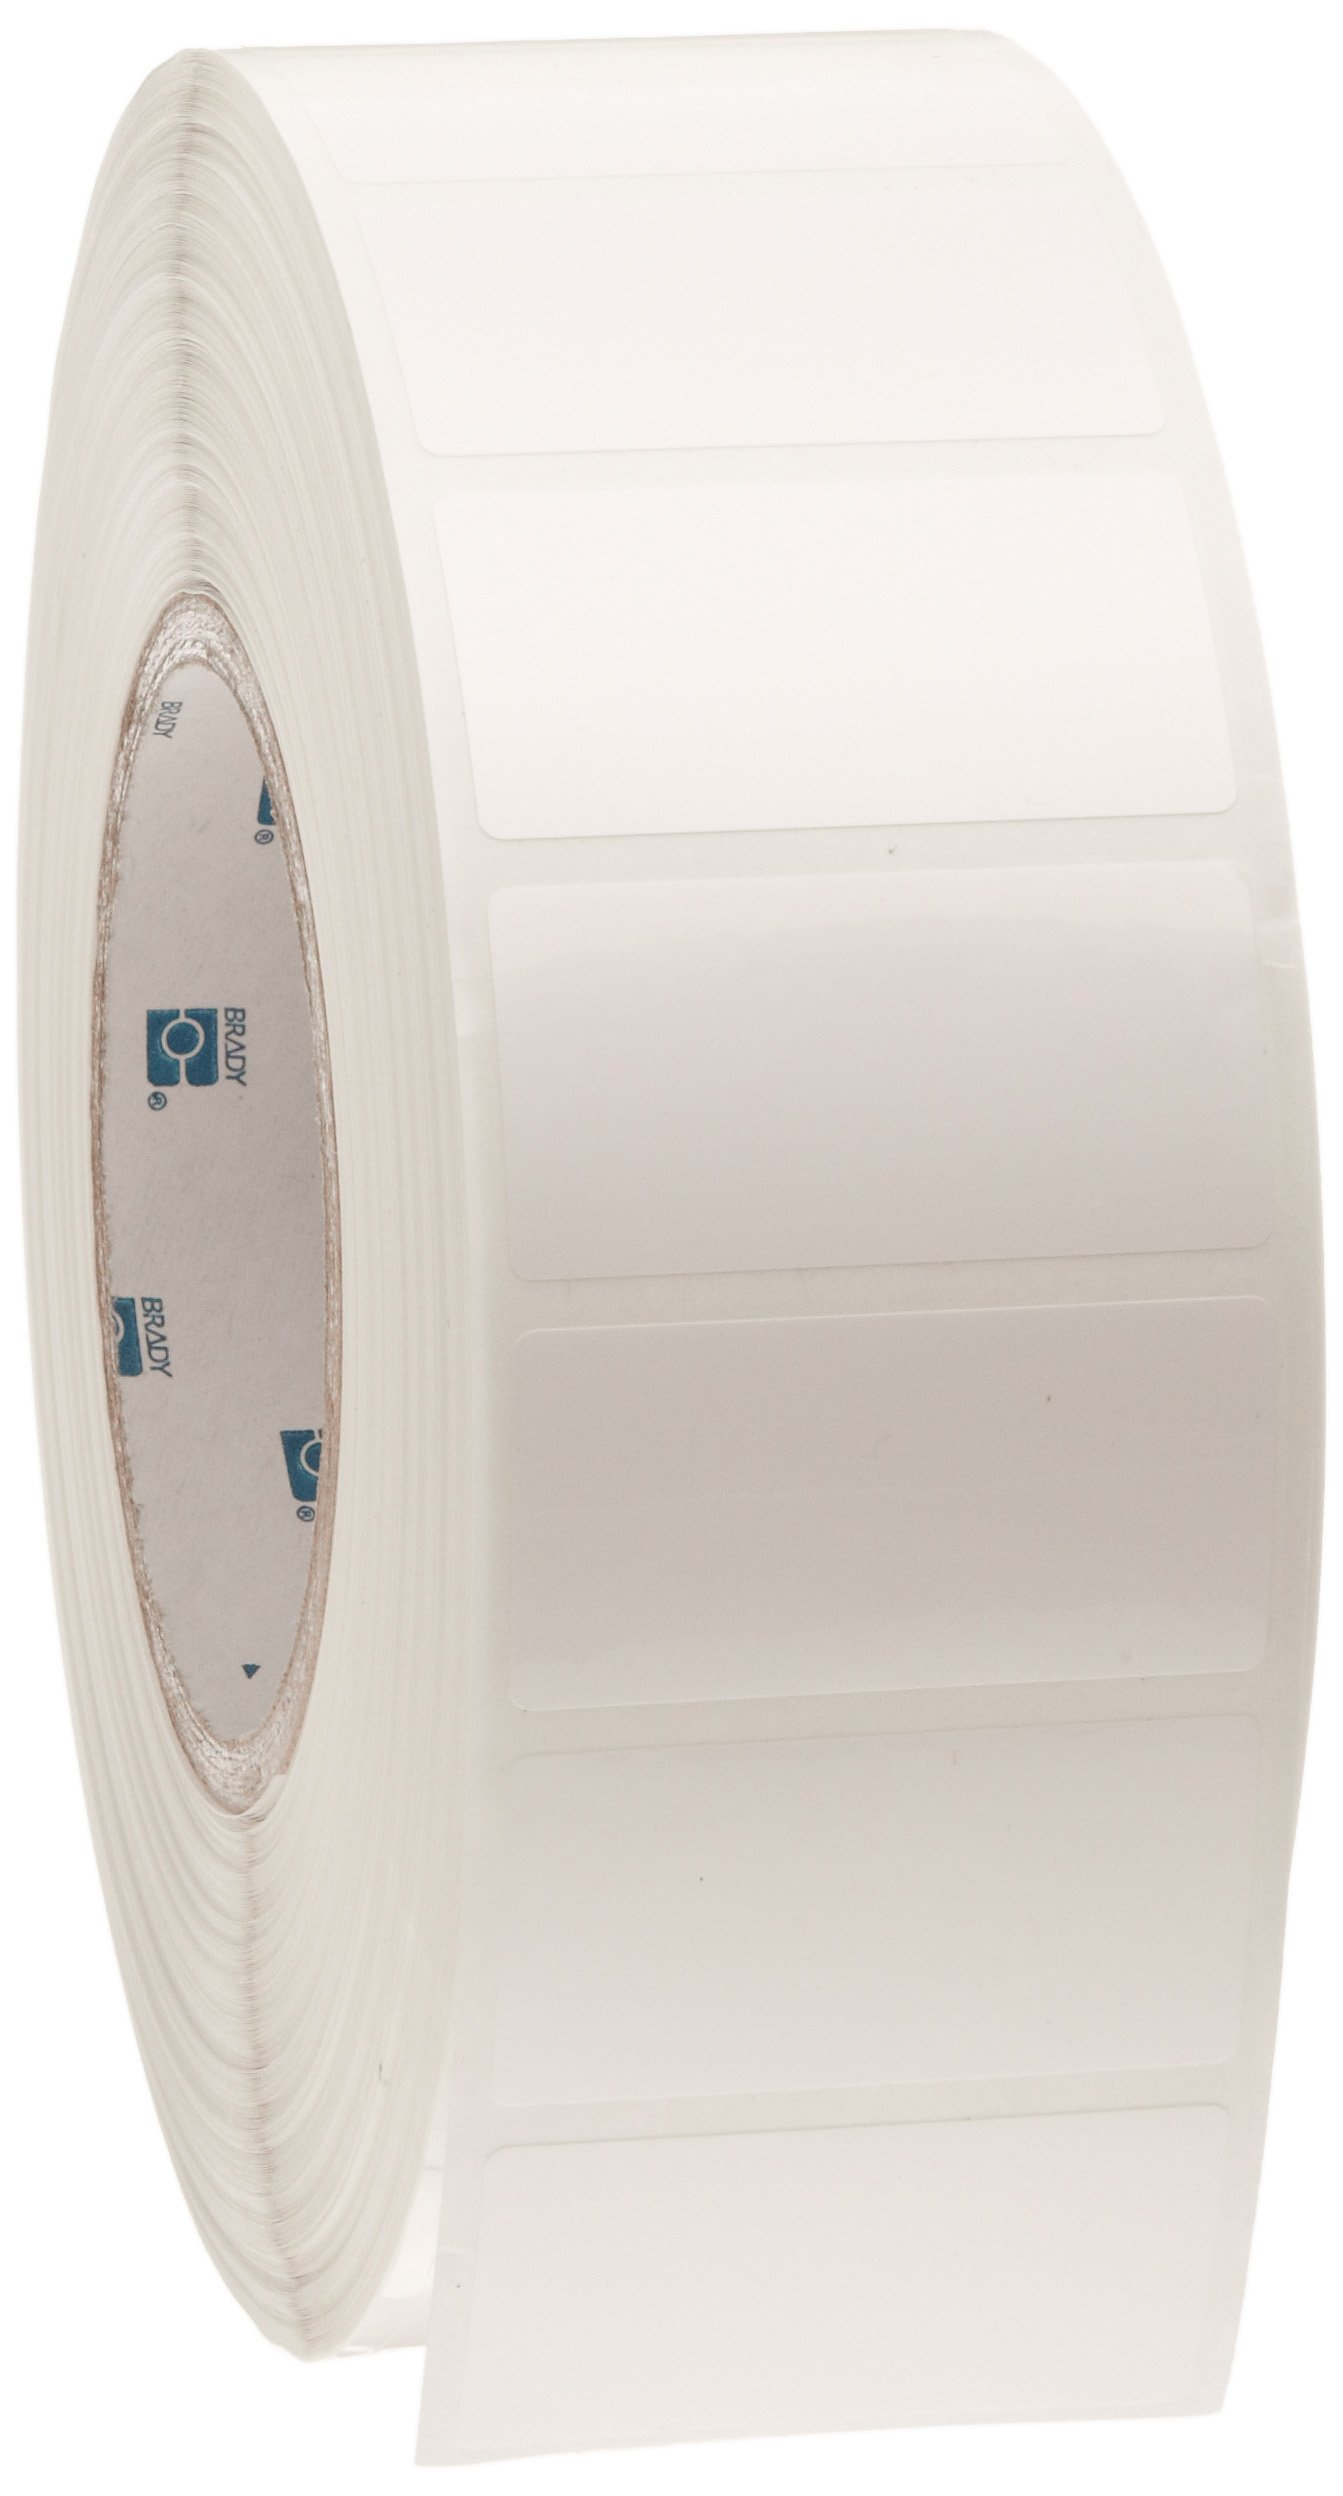 Brady THT-17-483-3 2'' Width x 1'' Height, B-483 Ultra Aggressive Polyester, Gloss Finish White Thermal Transfer Printable Label (3000 per Roll)